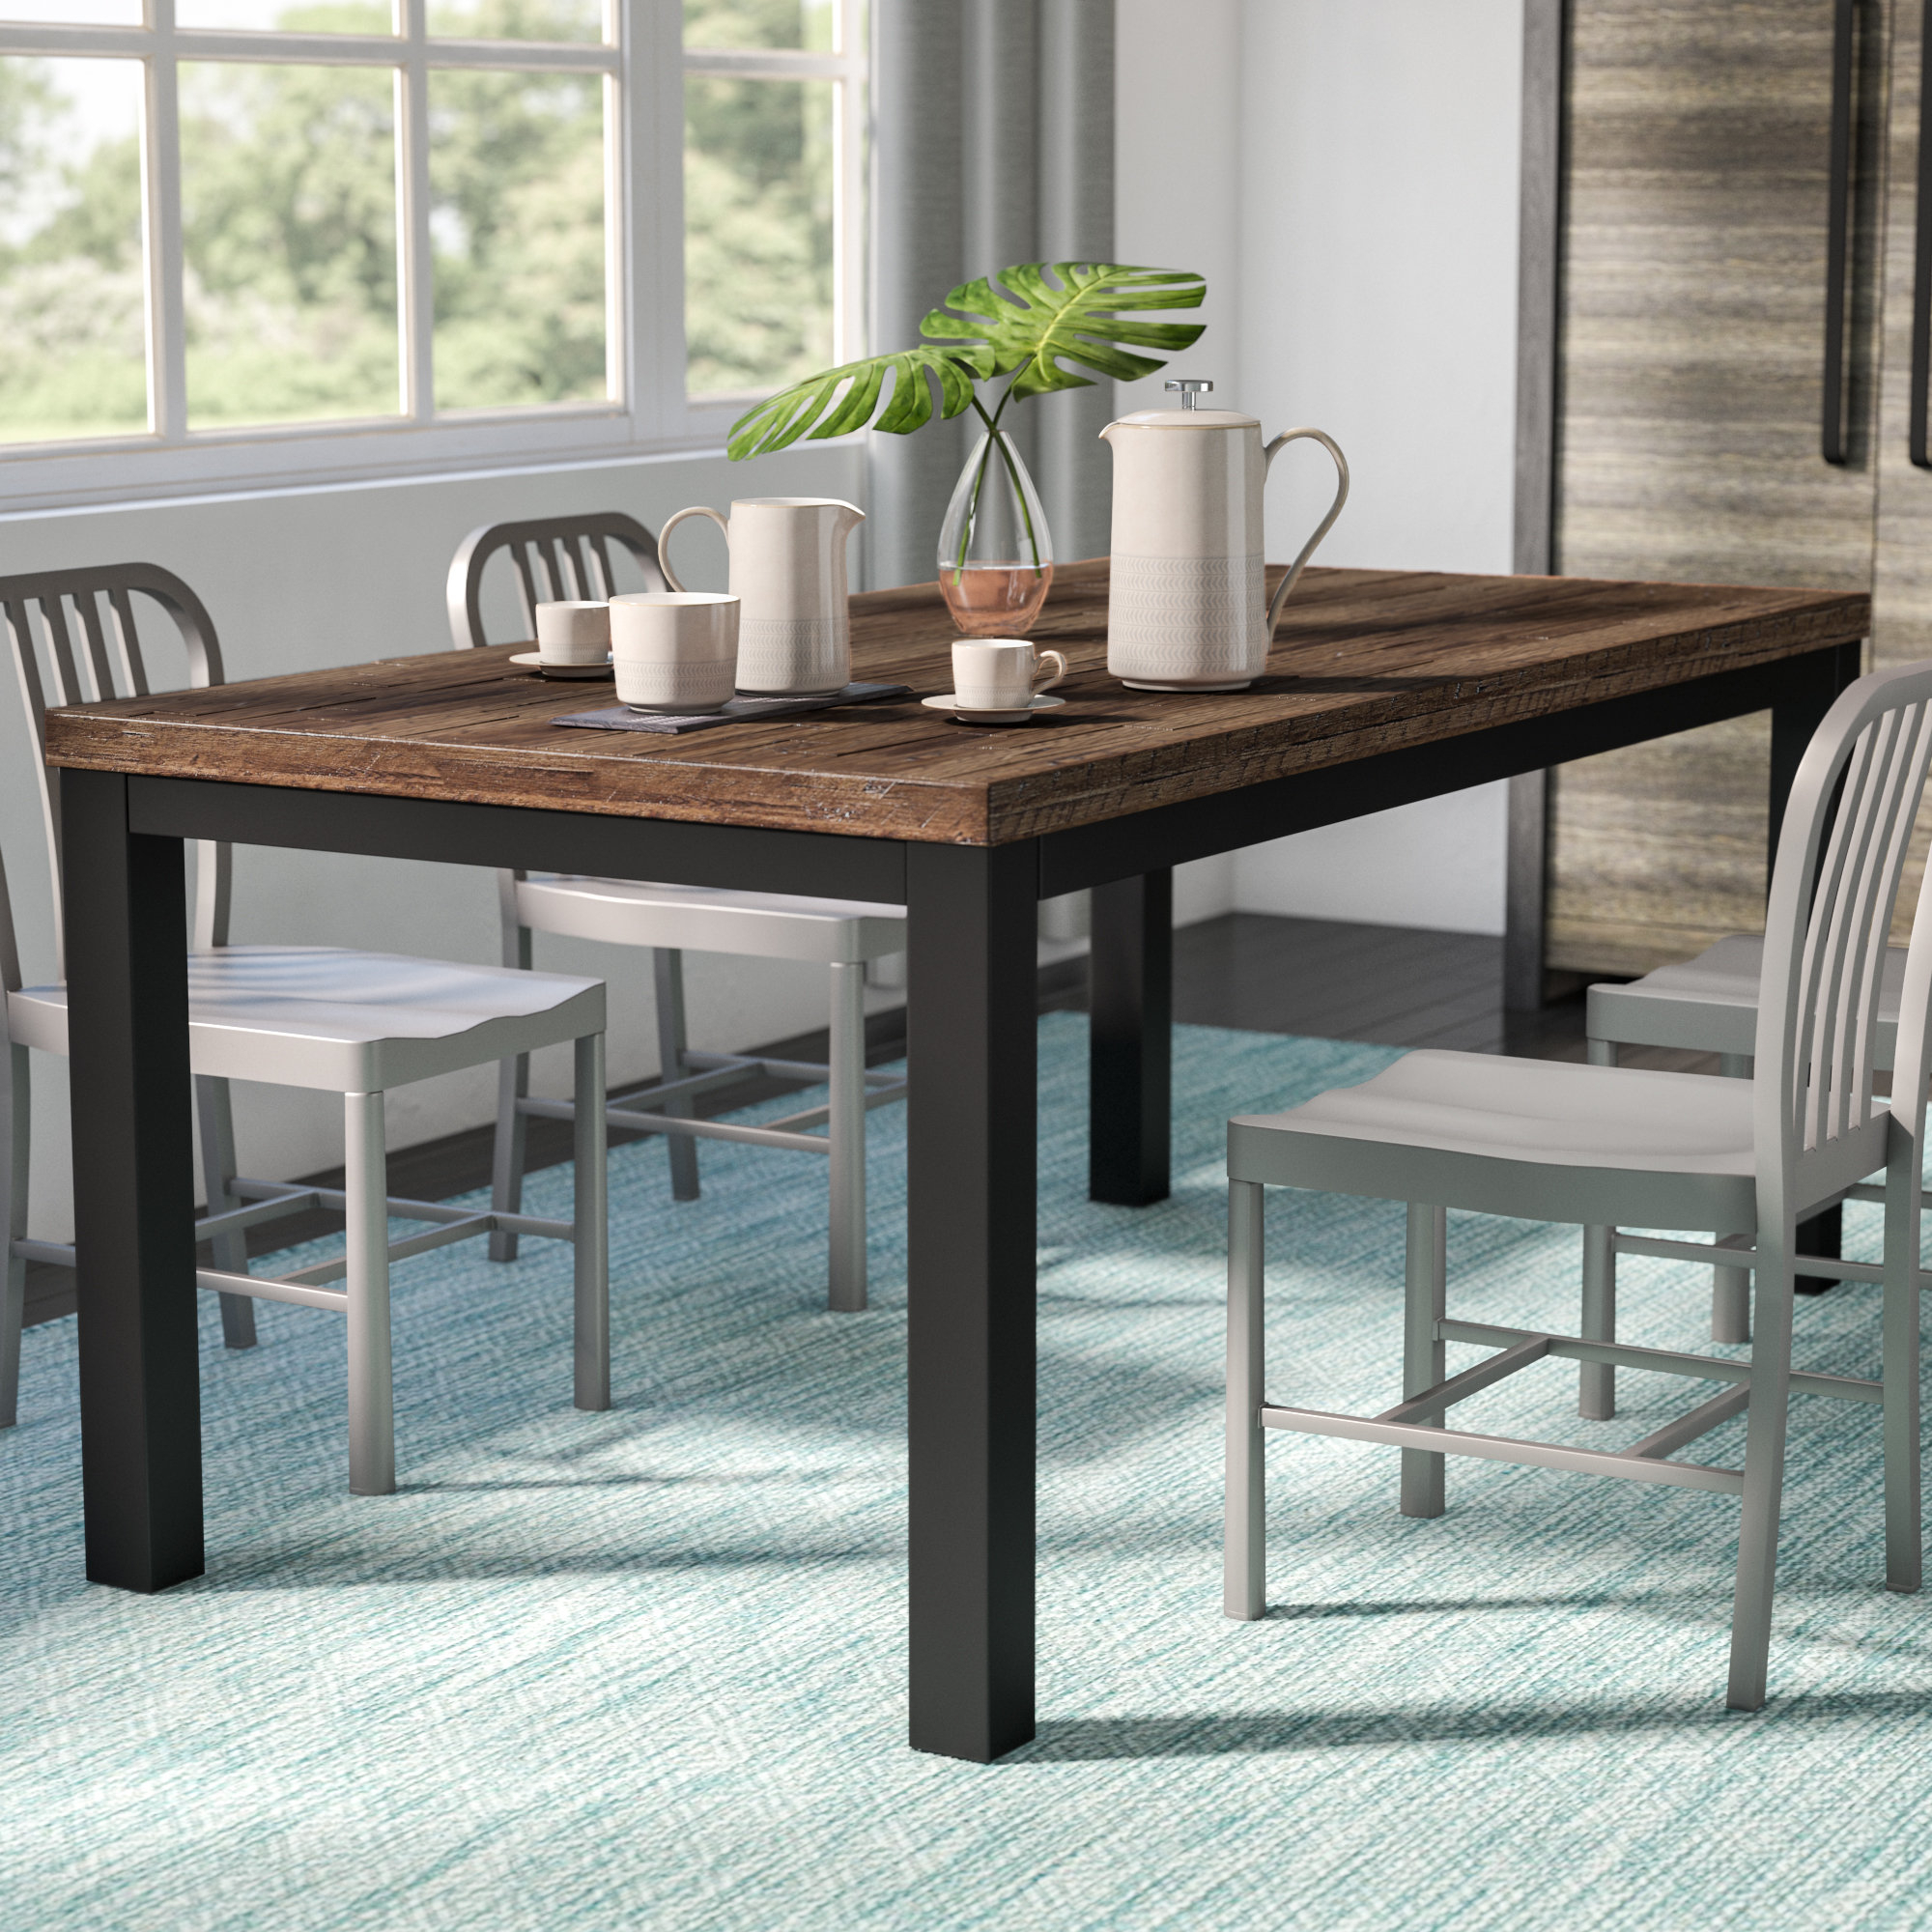 Most Recent Langley 5 Piece Dining Set Intended For Pattonsburg 5 Piece Dining Sets (View 7 of 20)